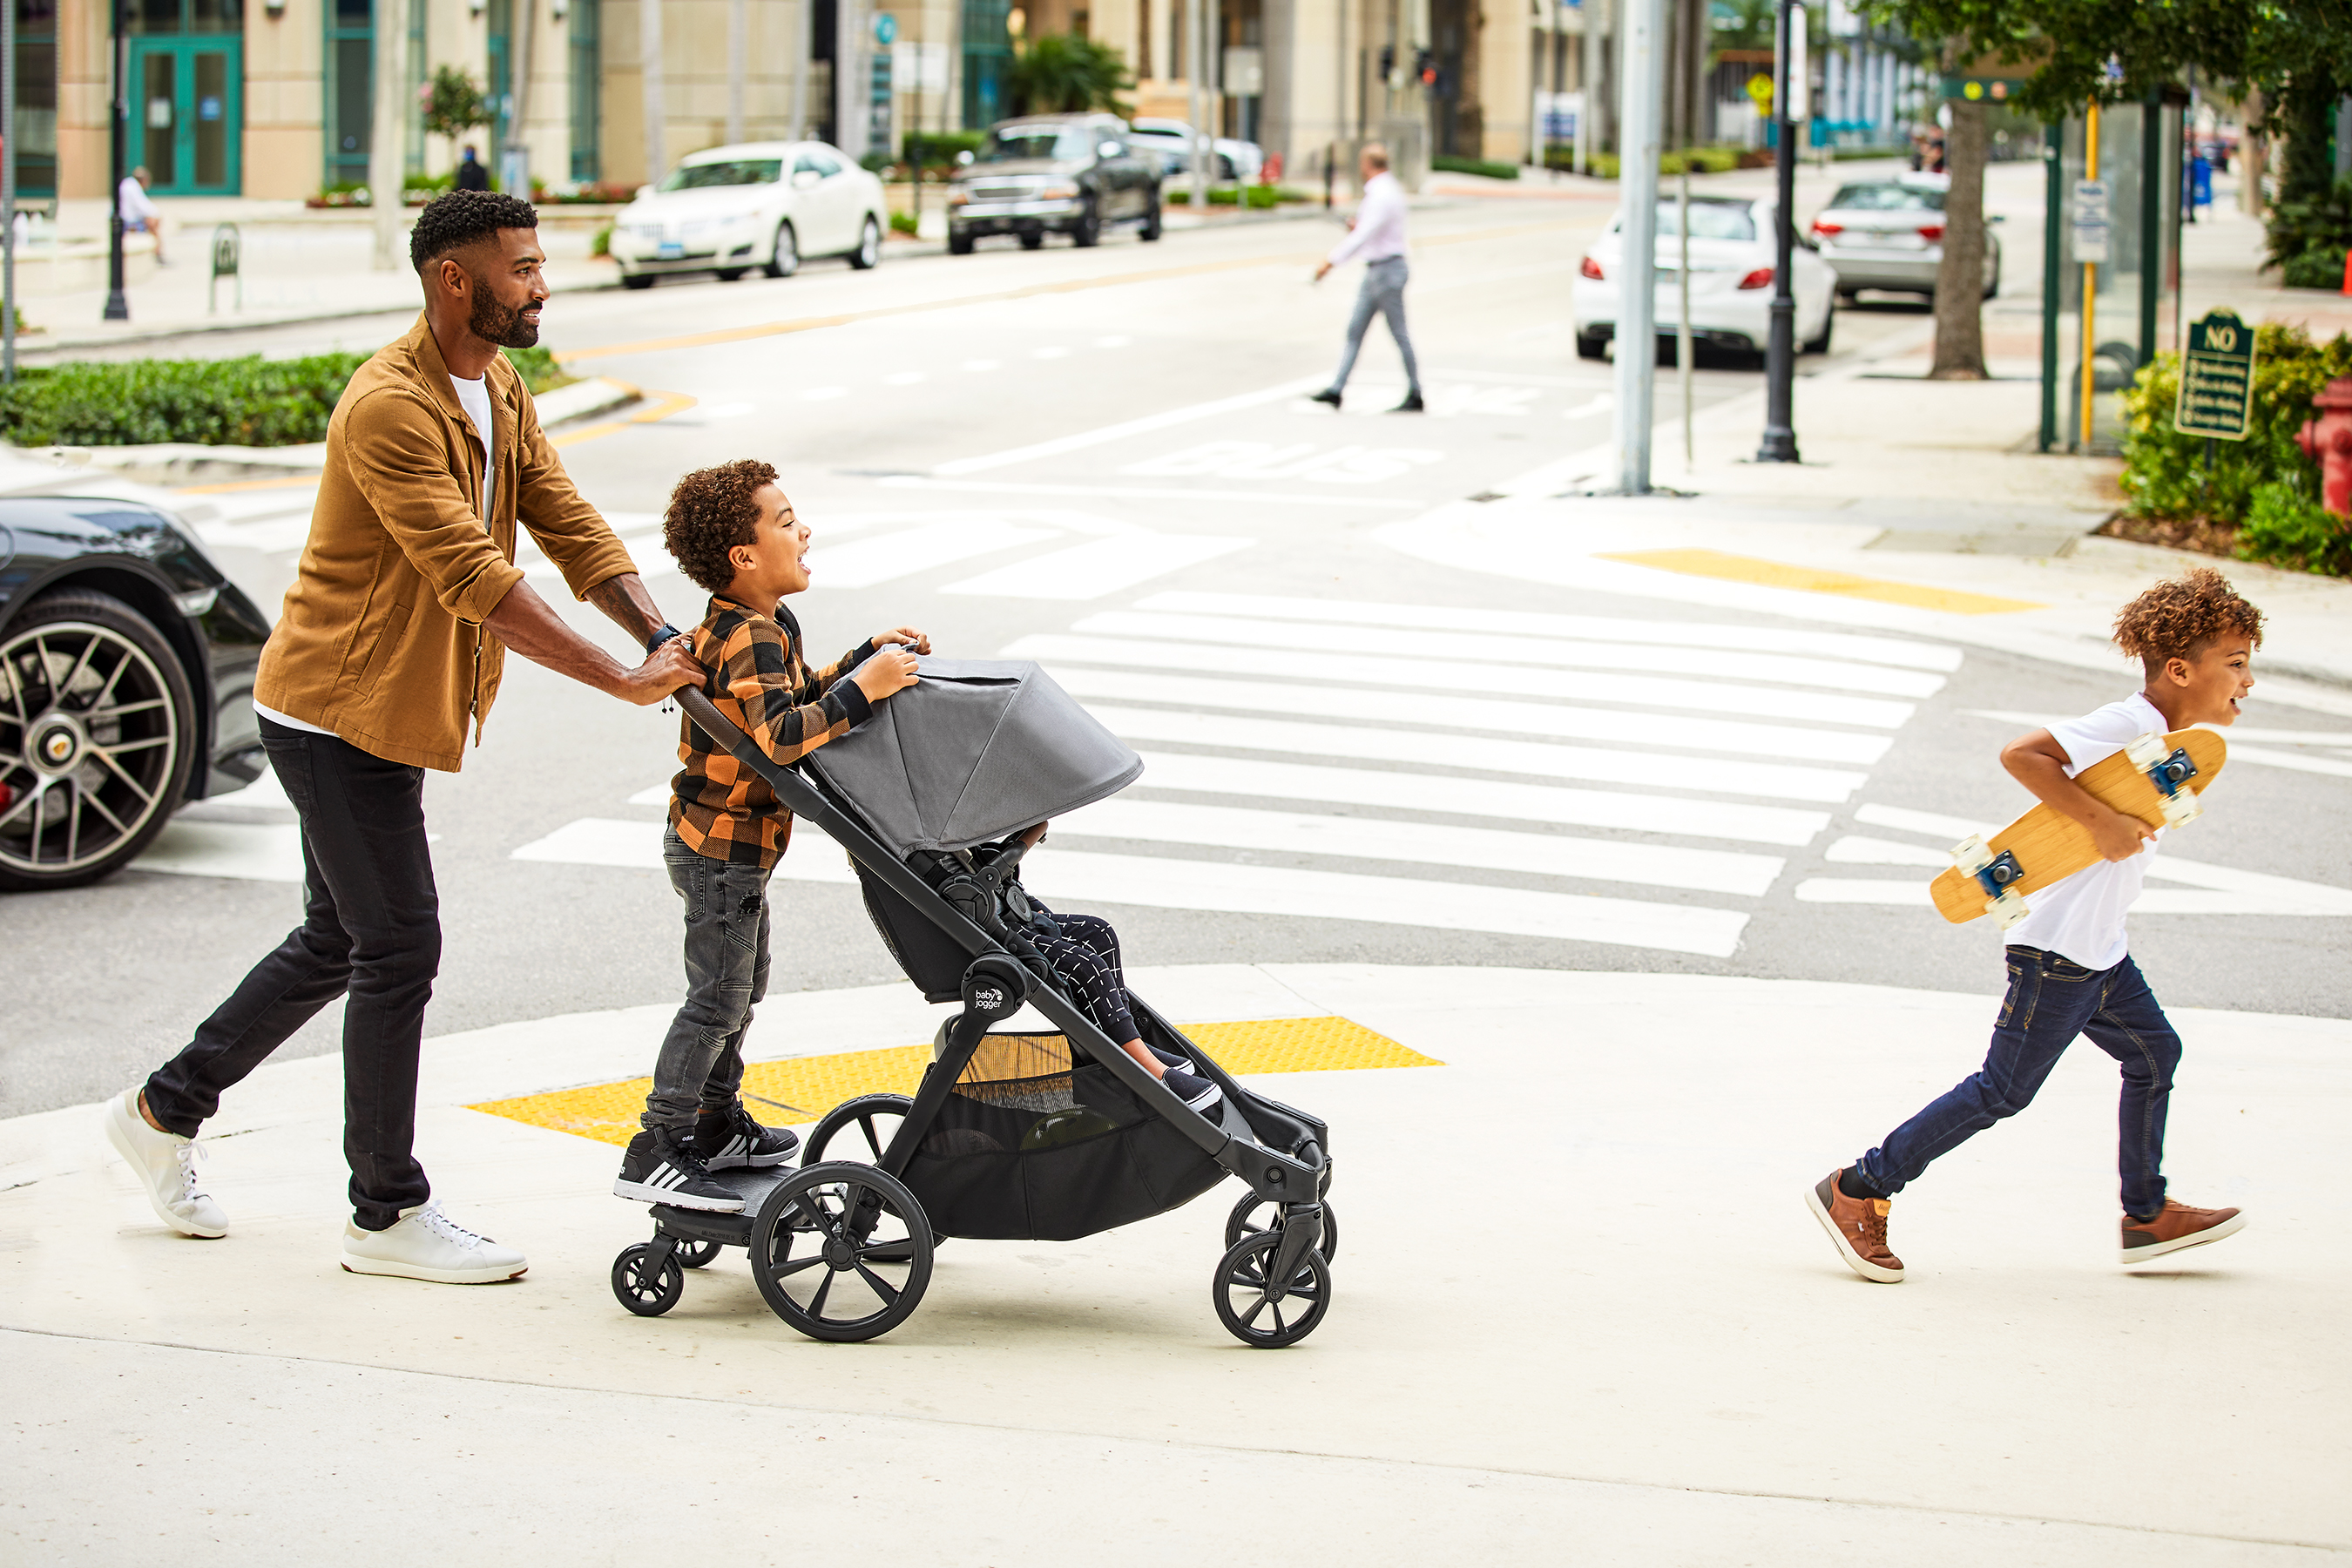 Where you go, baby goes too. Build their confidence to explore their city, their motivation to discover themselves and their determination to climb to the top of the trail with Baby Jogger®.